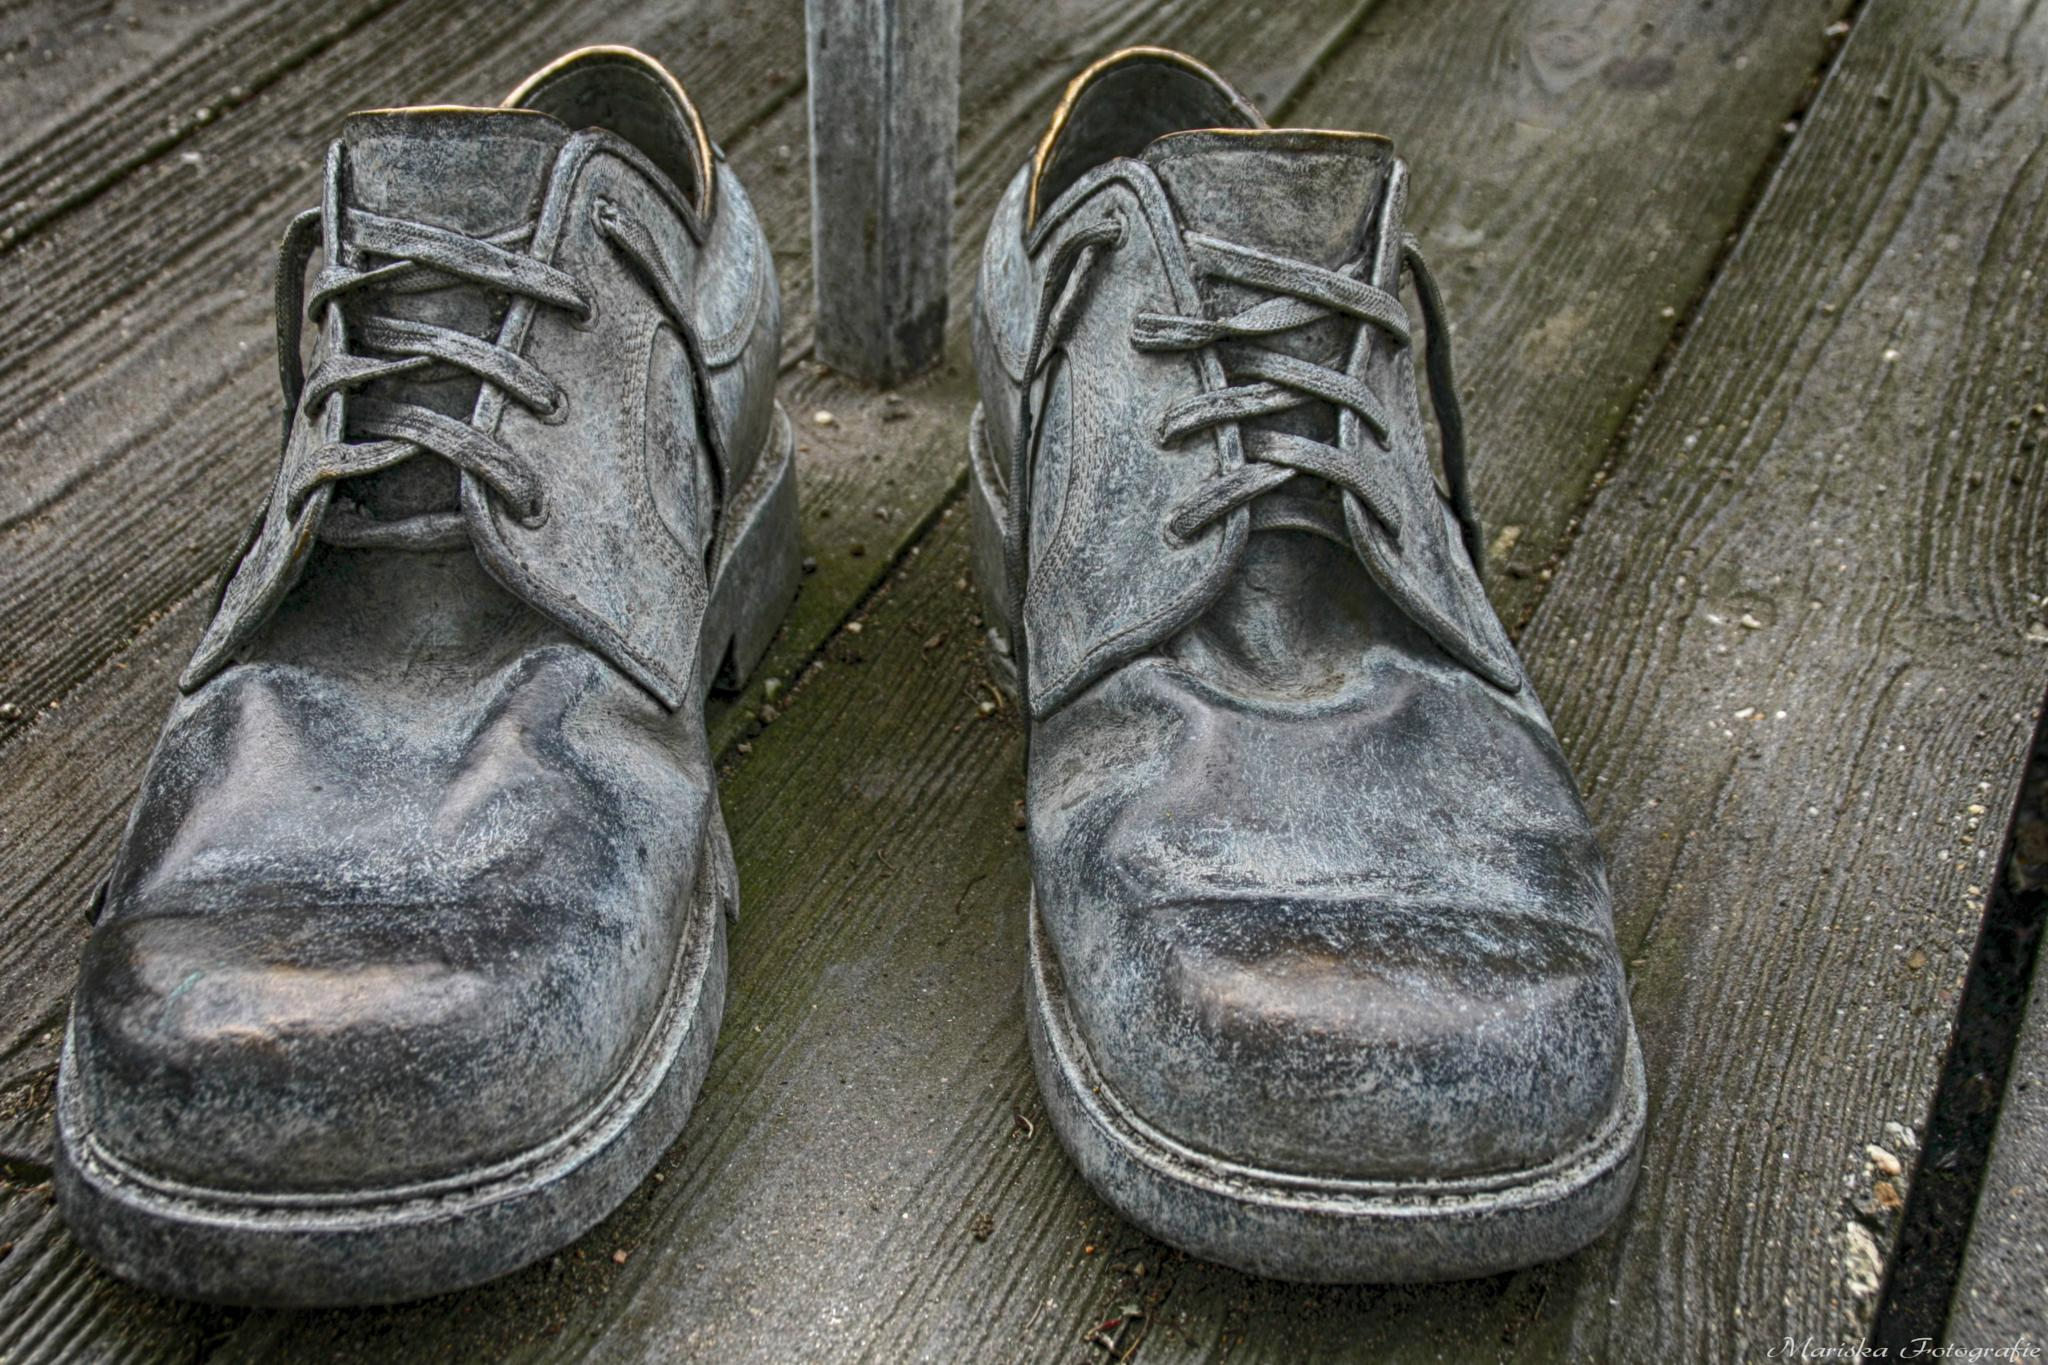 The shoes from the giant Rigardus Rijnhout R.I.P by Chaynasa